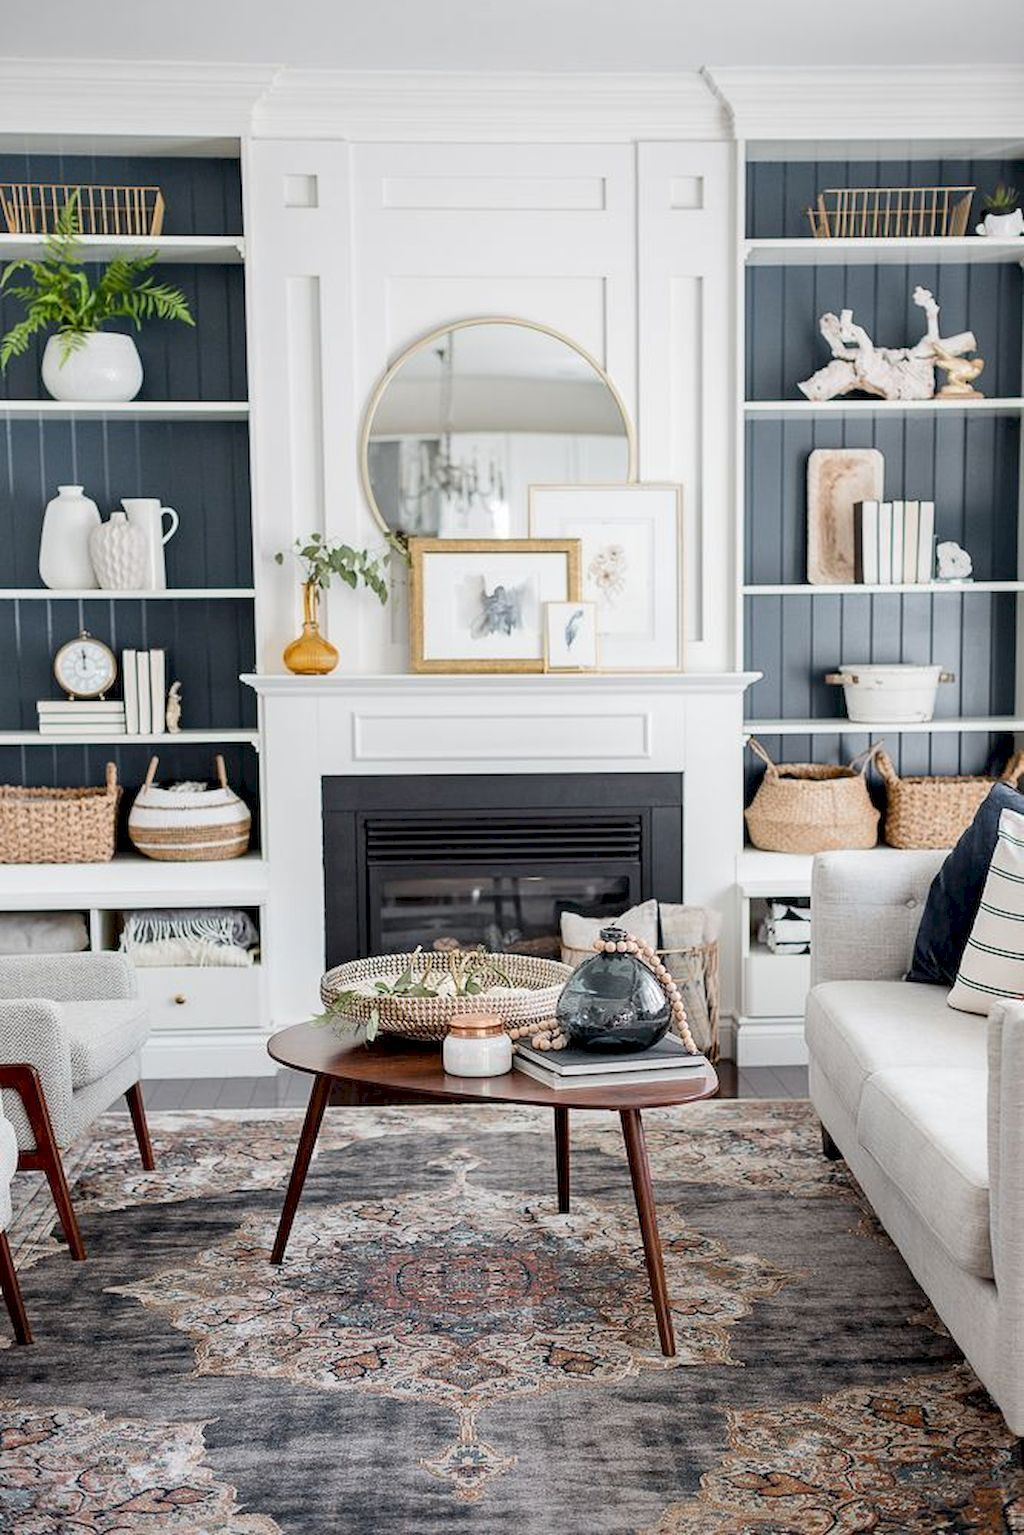 90 Cozy Farmhouse Living Room Rug Decor Ideas images